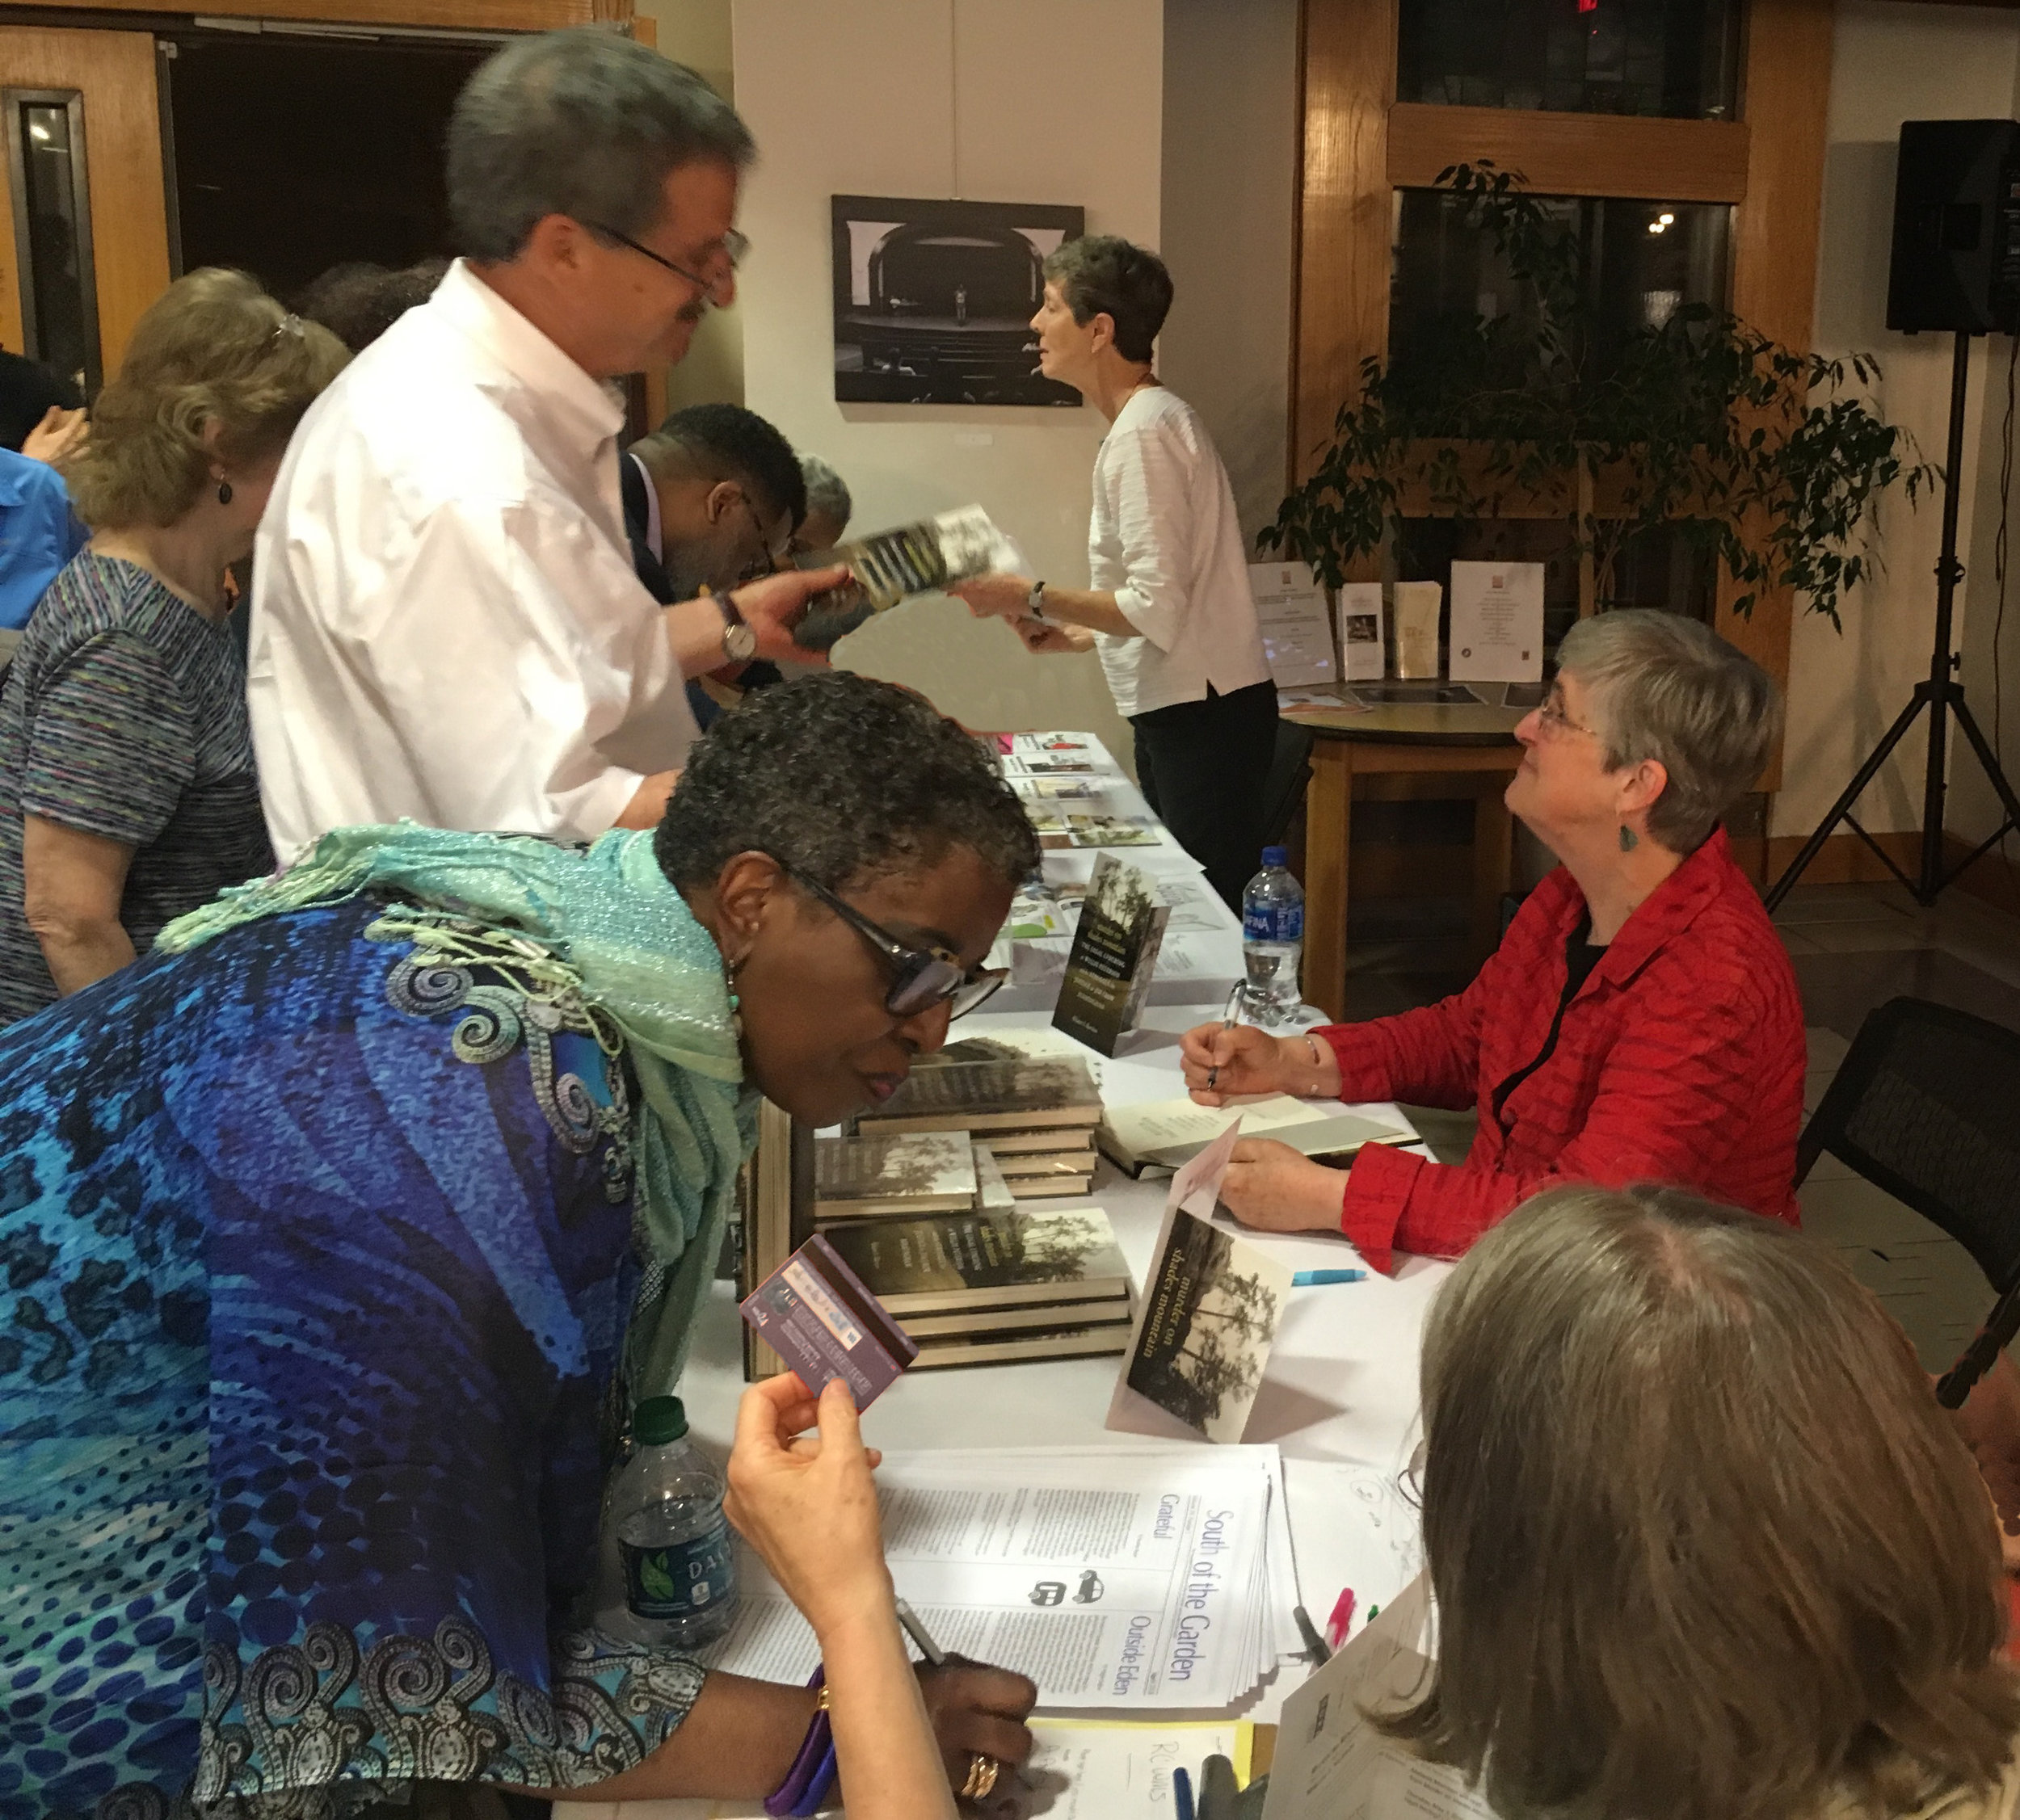 Signing books at the Hayti Heritage Center in Durham, North Carolina ~ May 3, 2018